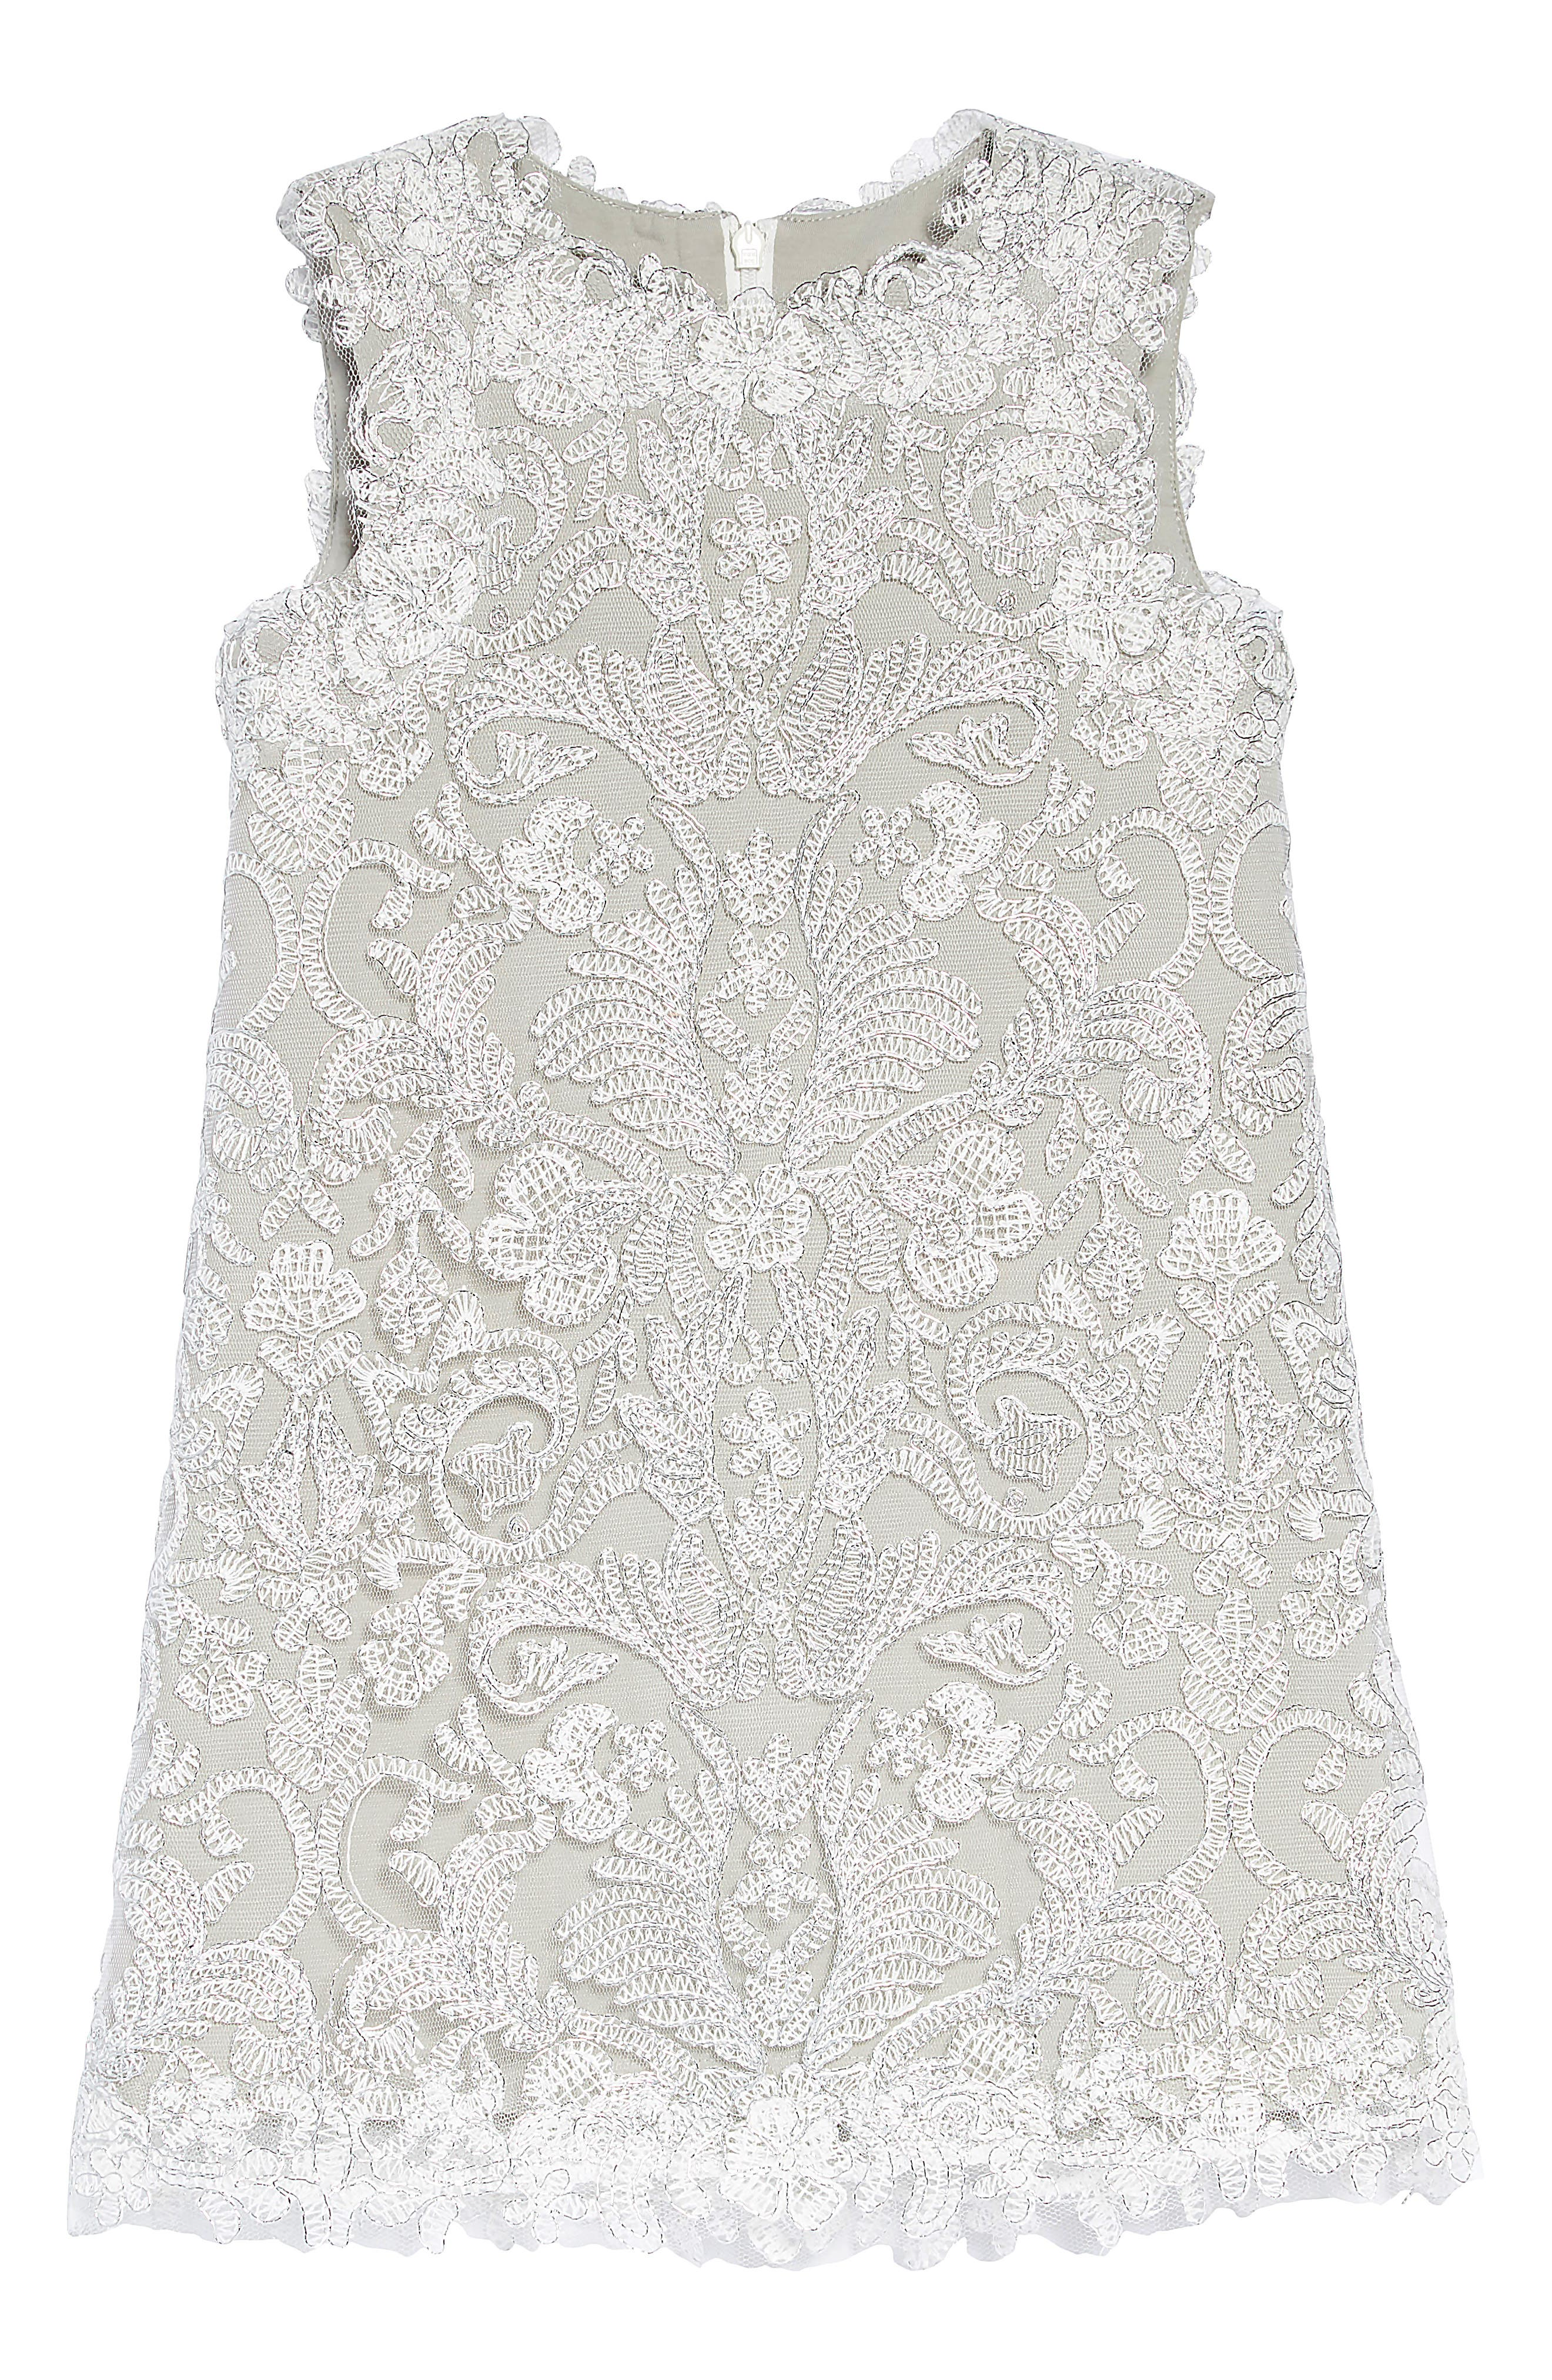 Embroidered Sheath Dress,                         Main,                         color, SILVER